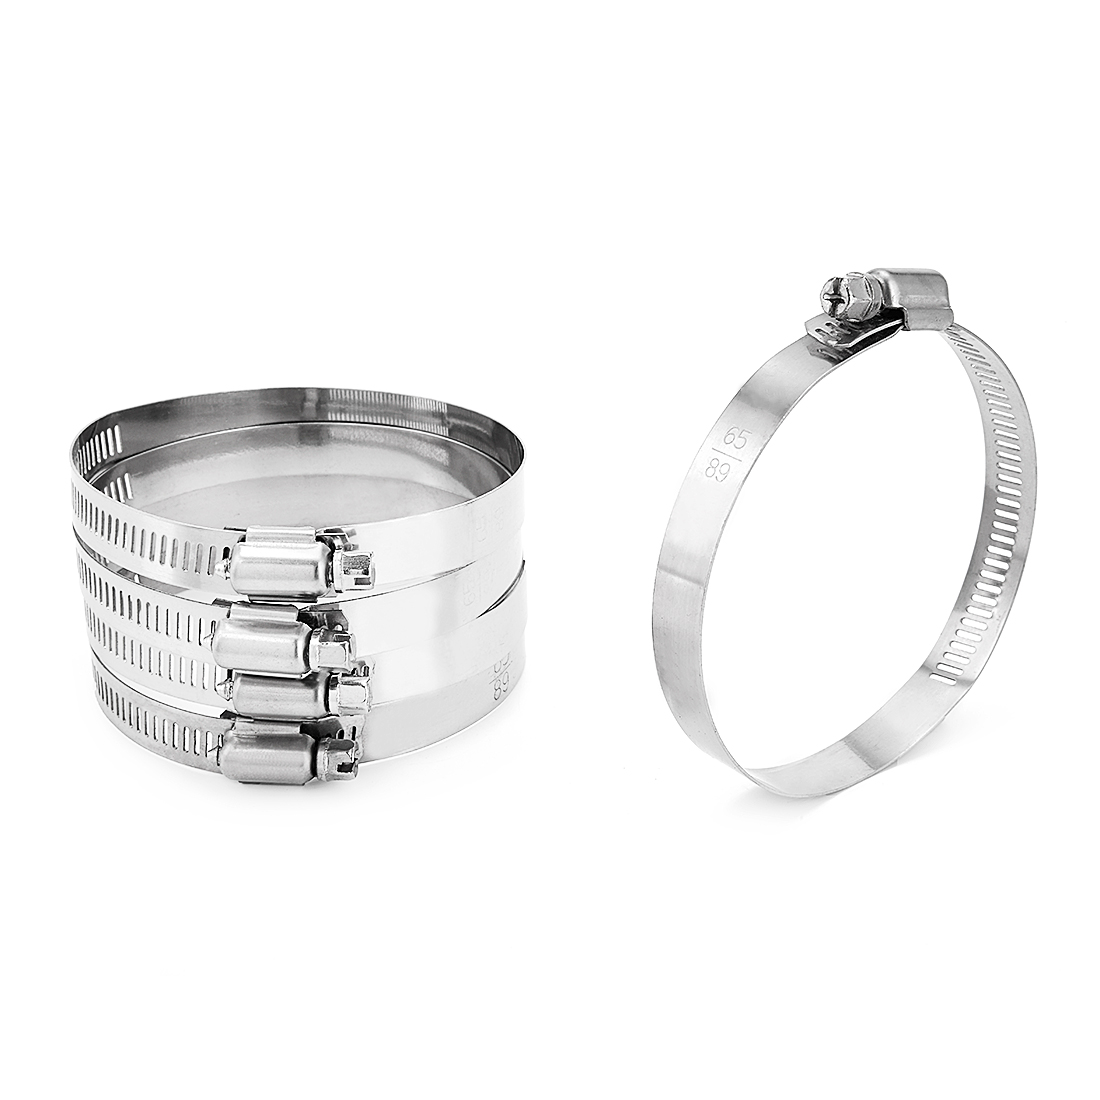 2.6-inch to 3.5-inch Clamping Range 201 Stainless Steel American Worm Gear Hose Clamp 5pcs